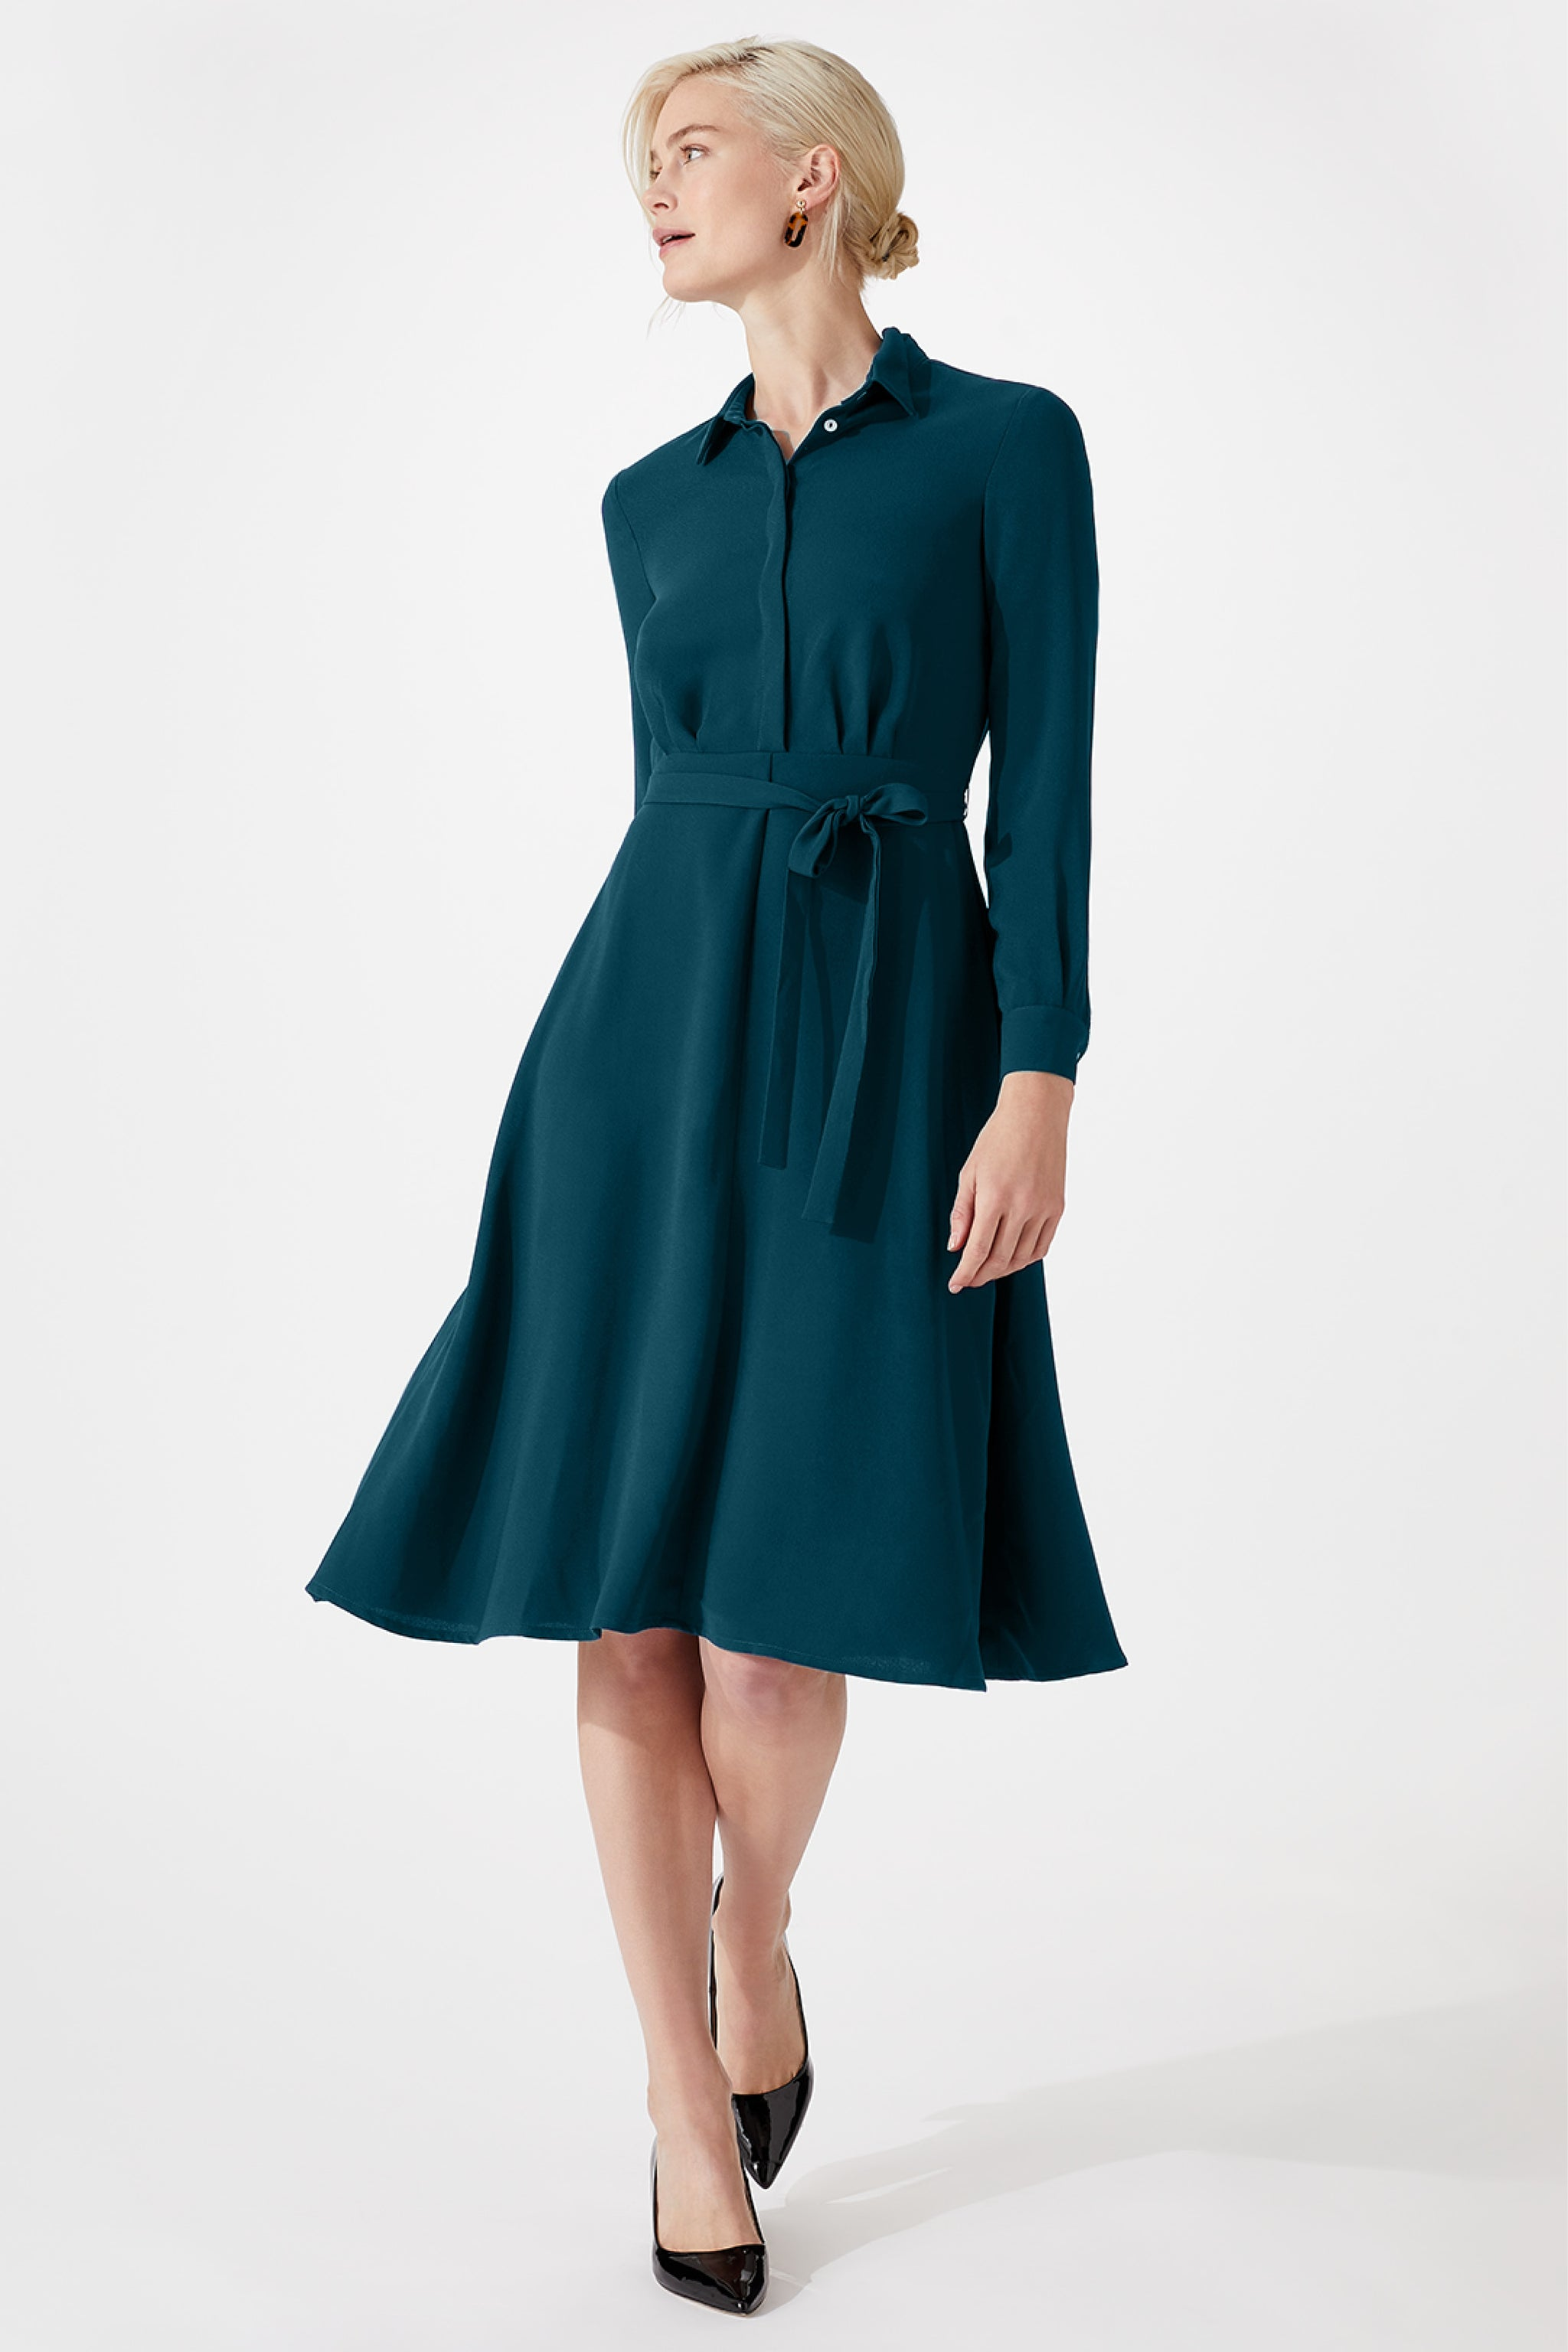 Exeter Teal Shirt Dress